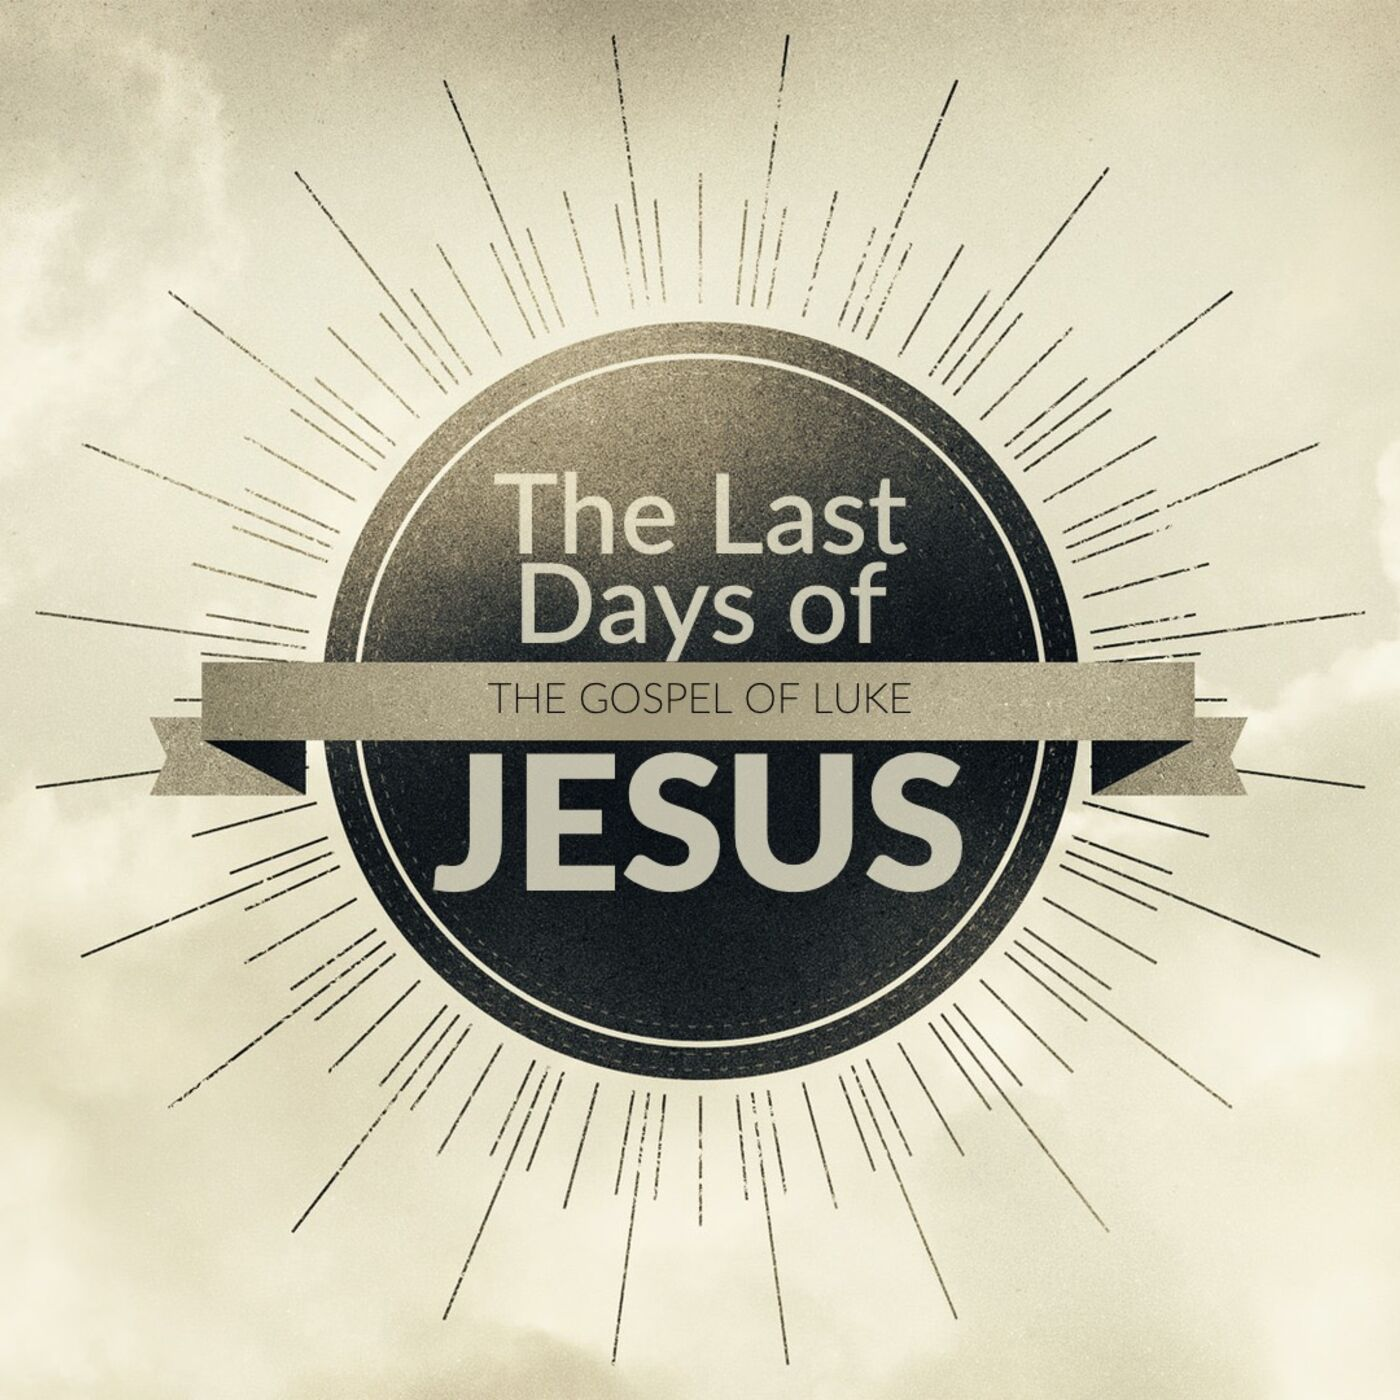 The Last Days of Jesus: The Rich Man and Lazarus (Luke 16:19-31)